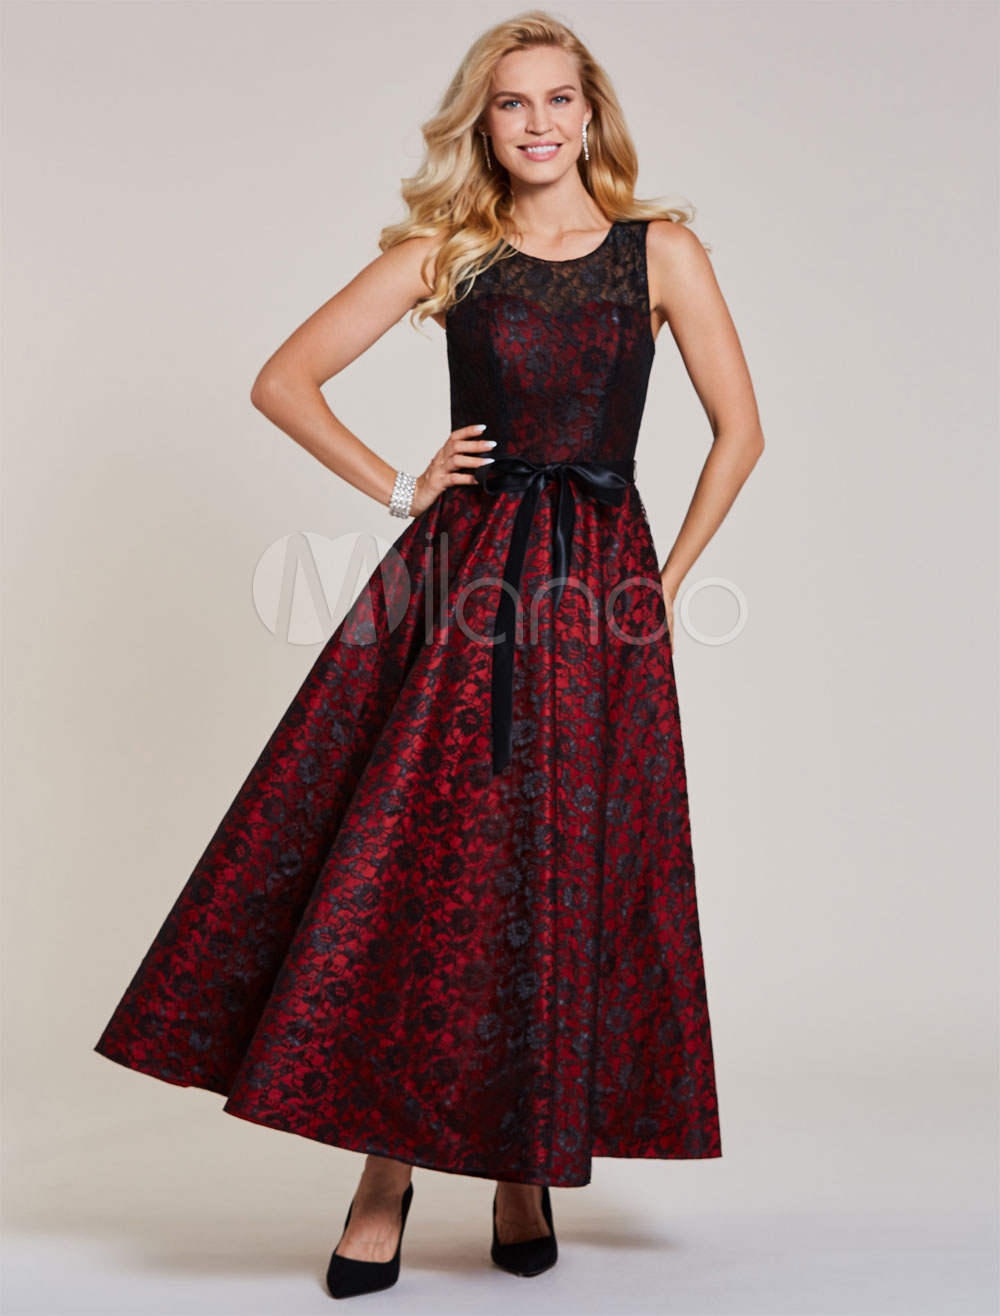 Buy Lace Cocktail Dresses Burgundy Sleeveless Ribbon Bow Sash Ankle Length Formal Party Dress for $92.39 in Milanoo store